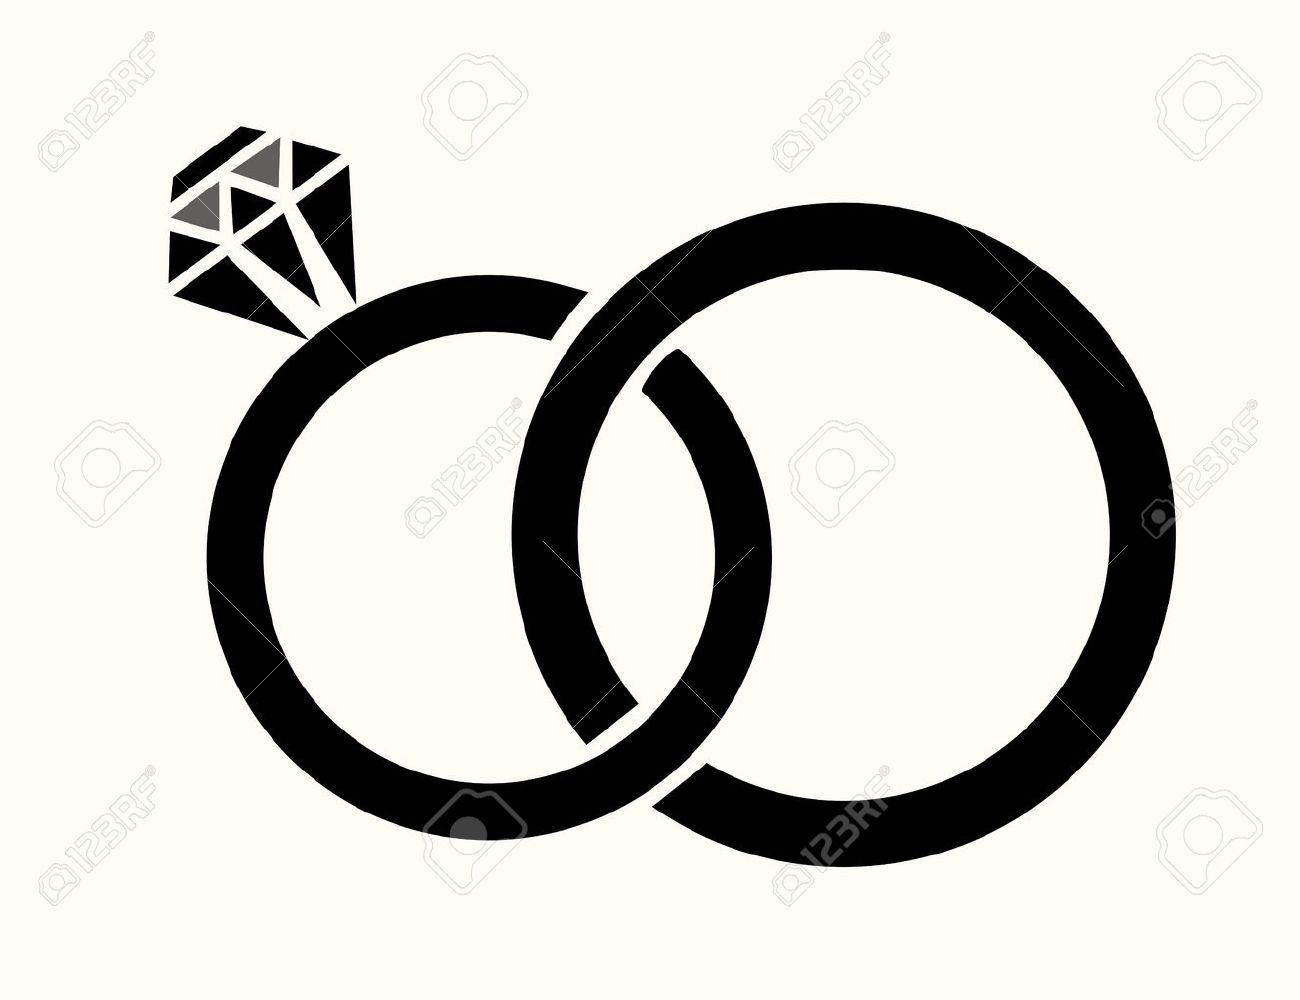 vector illustration of wedding rings isolated royalty free cliparts rh 123rf com wedding vectors free wedding vector png